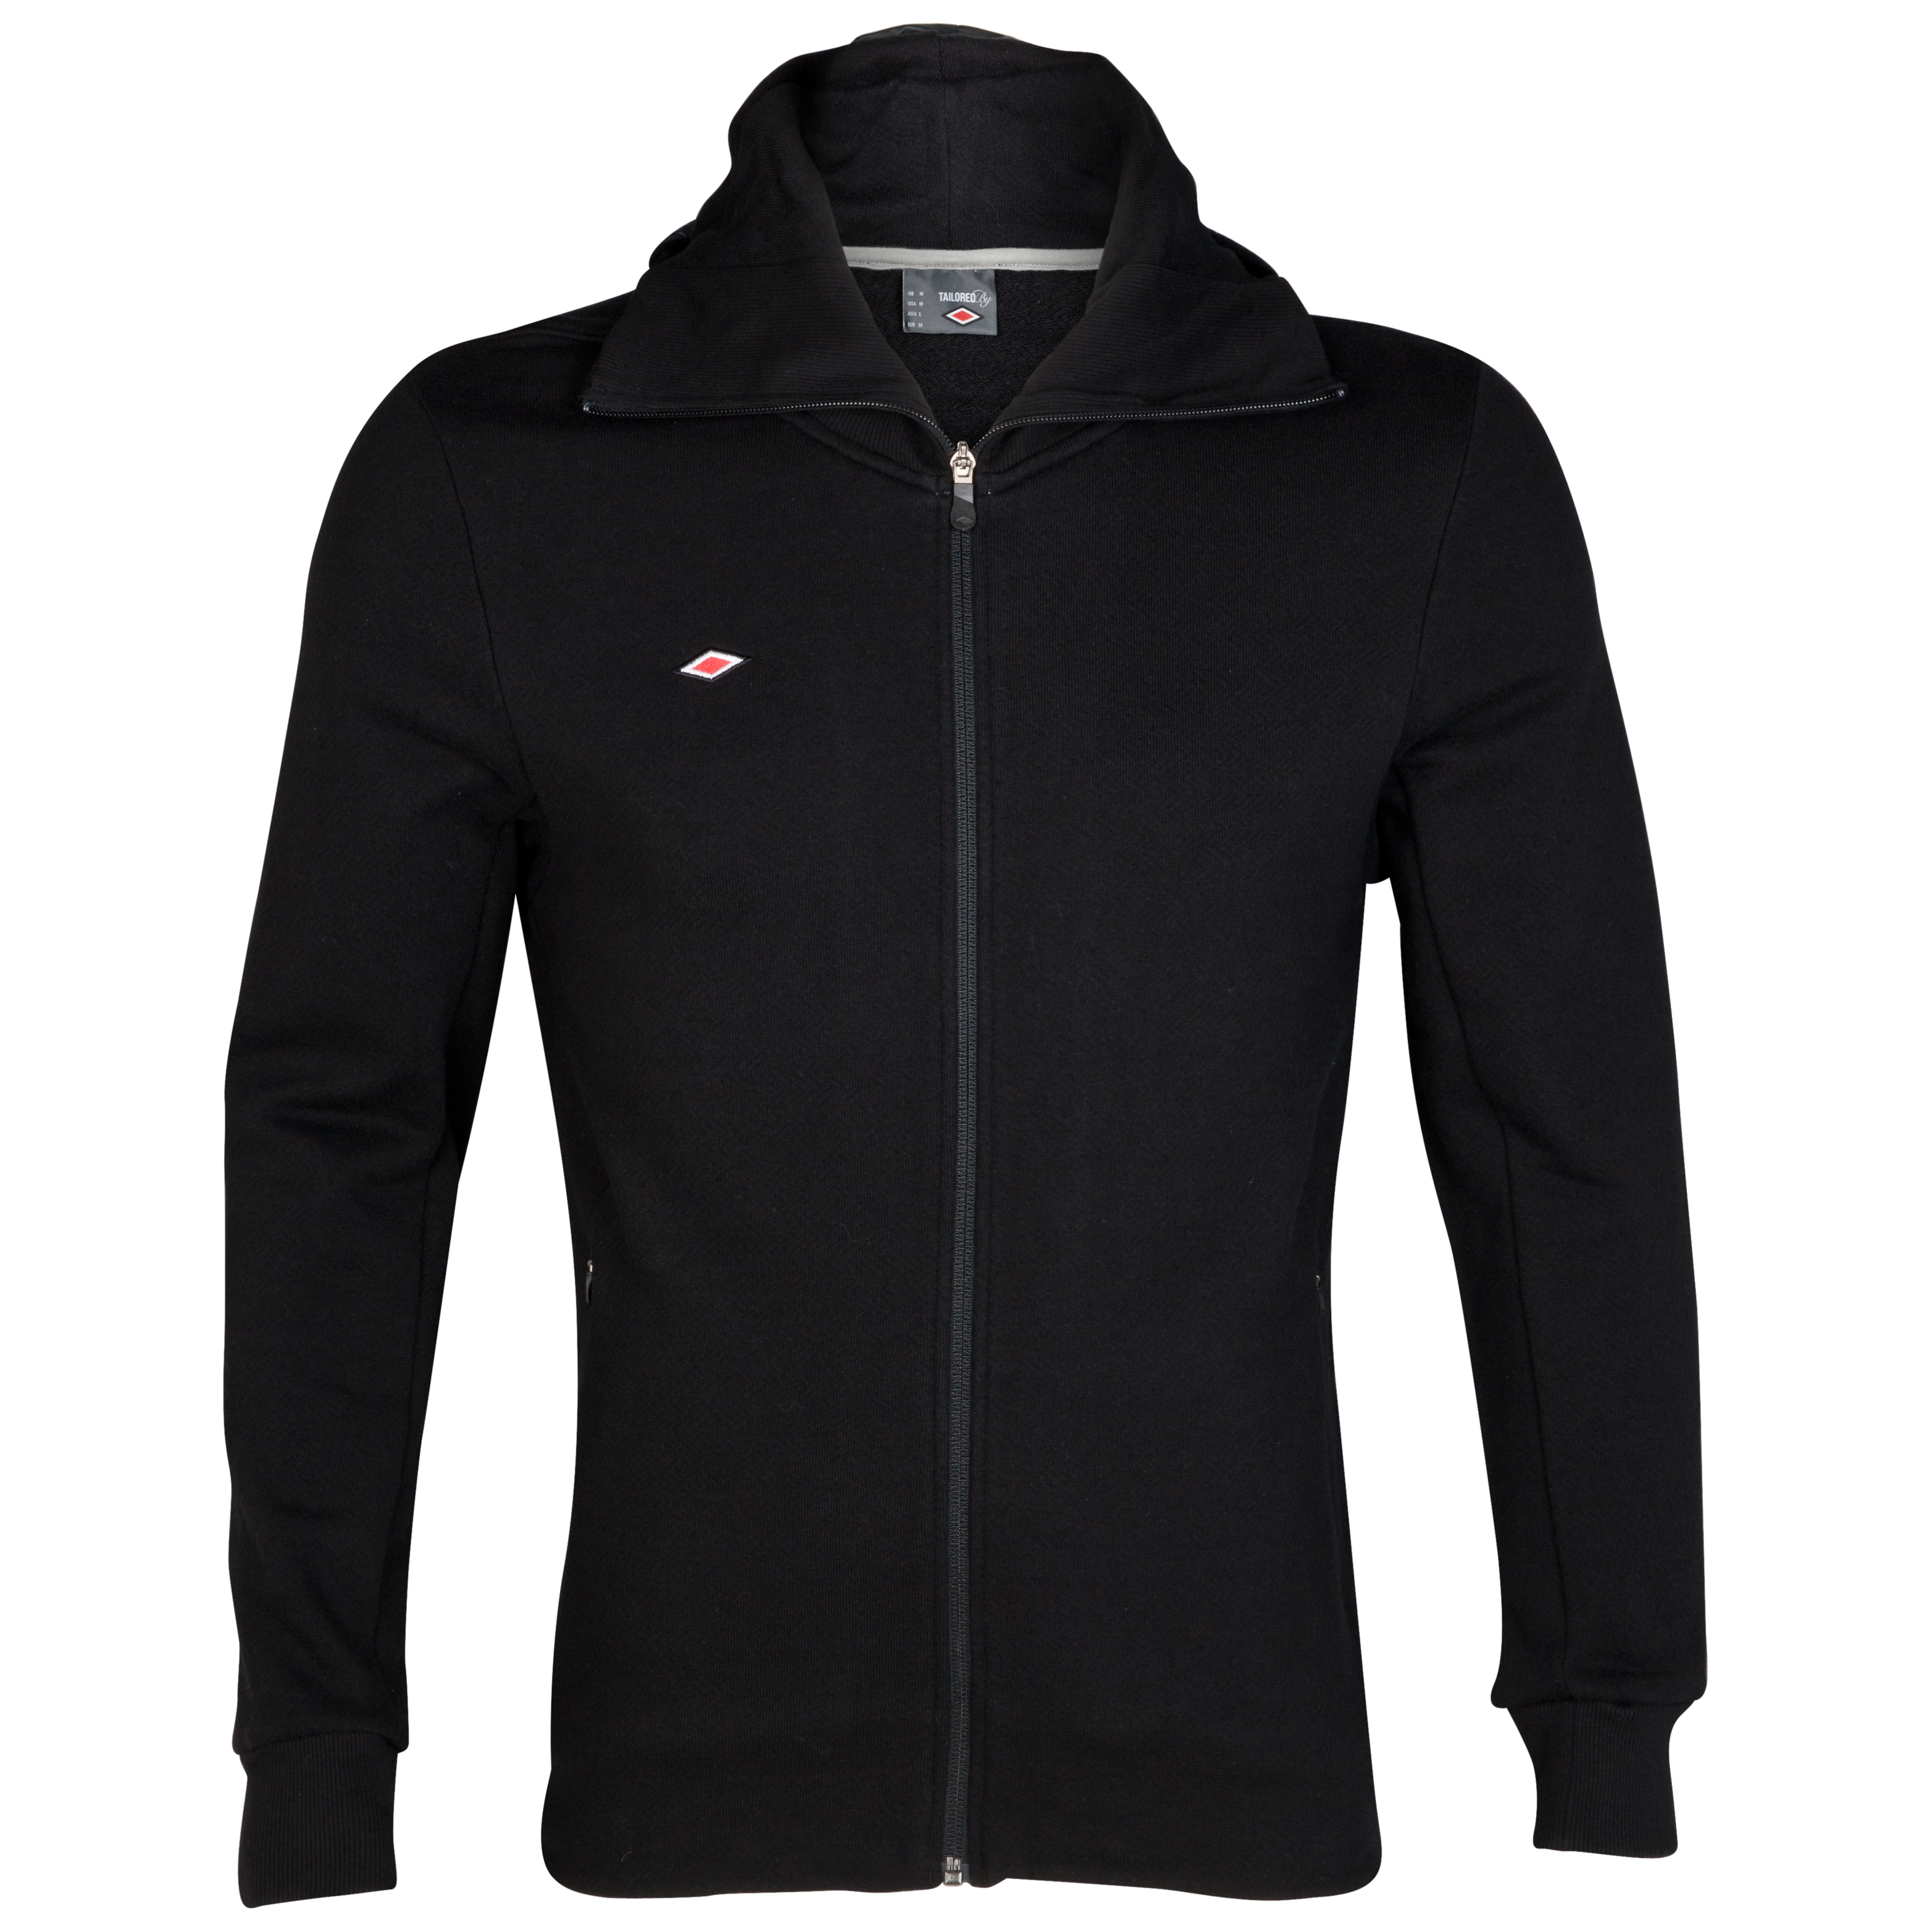 Umbro Full Zip Hooded Sweat - Black